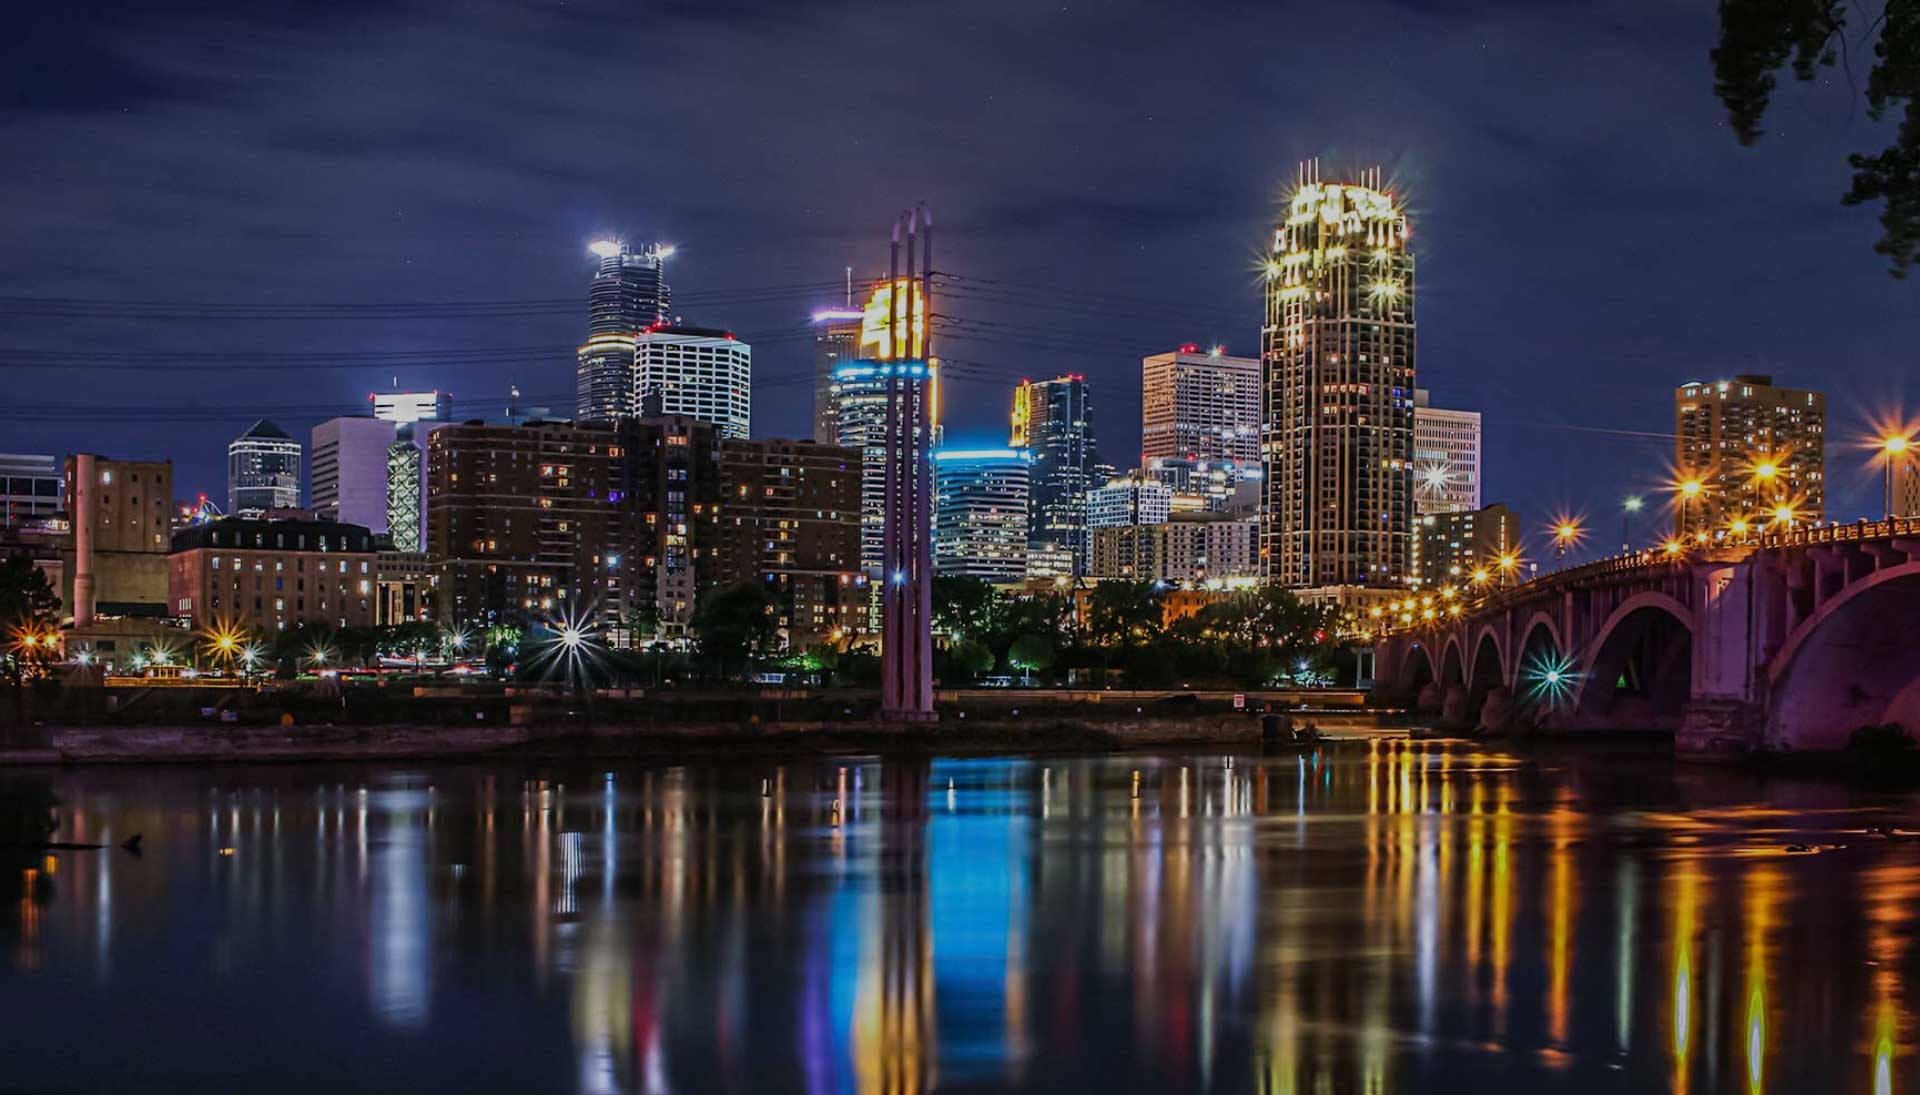 YES city of minneapolis at night